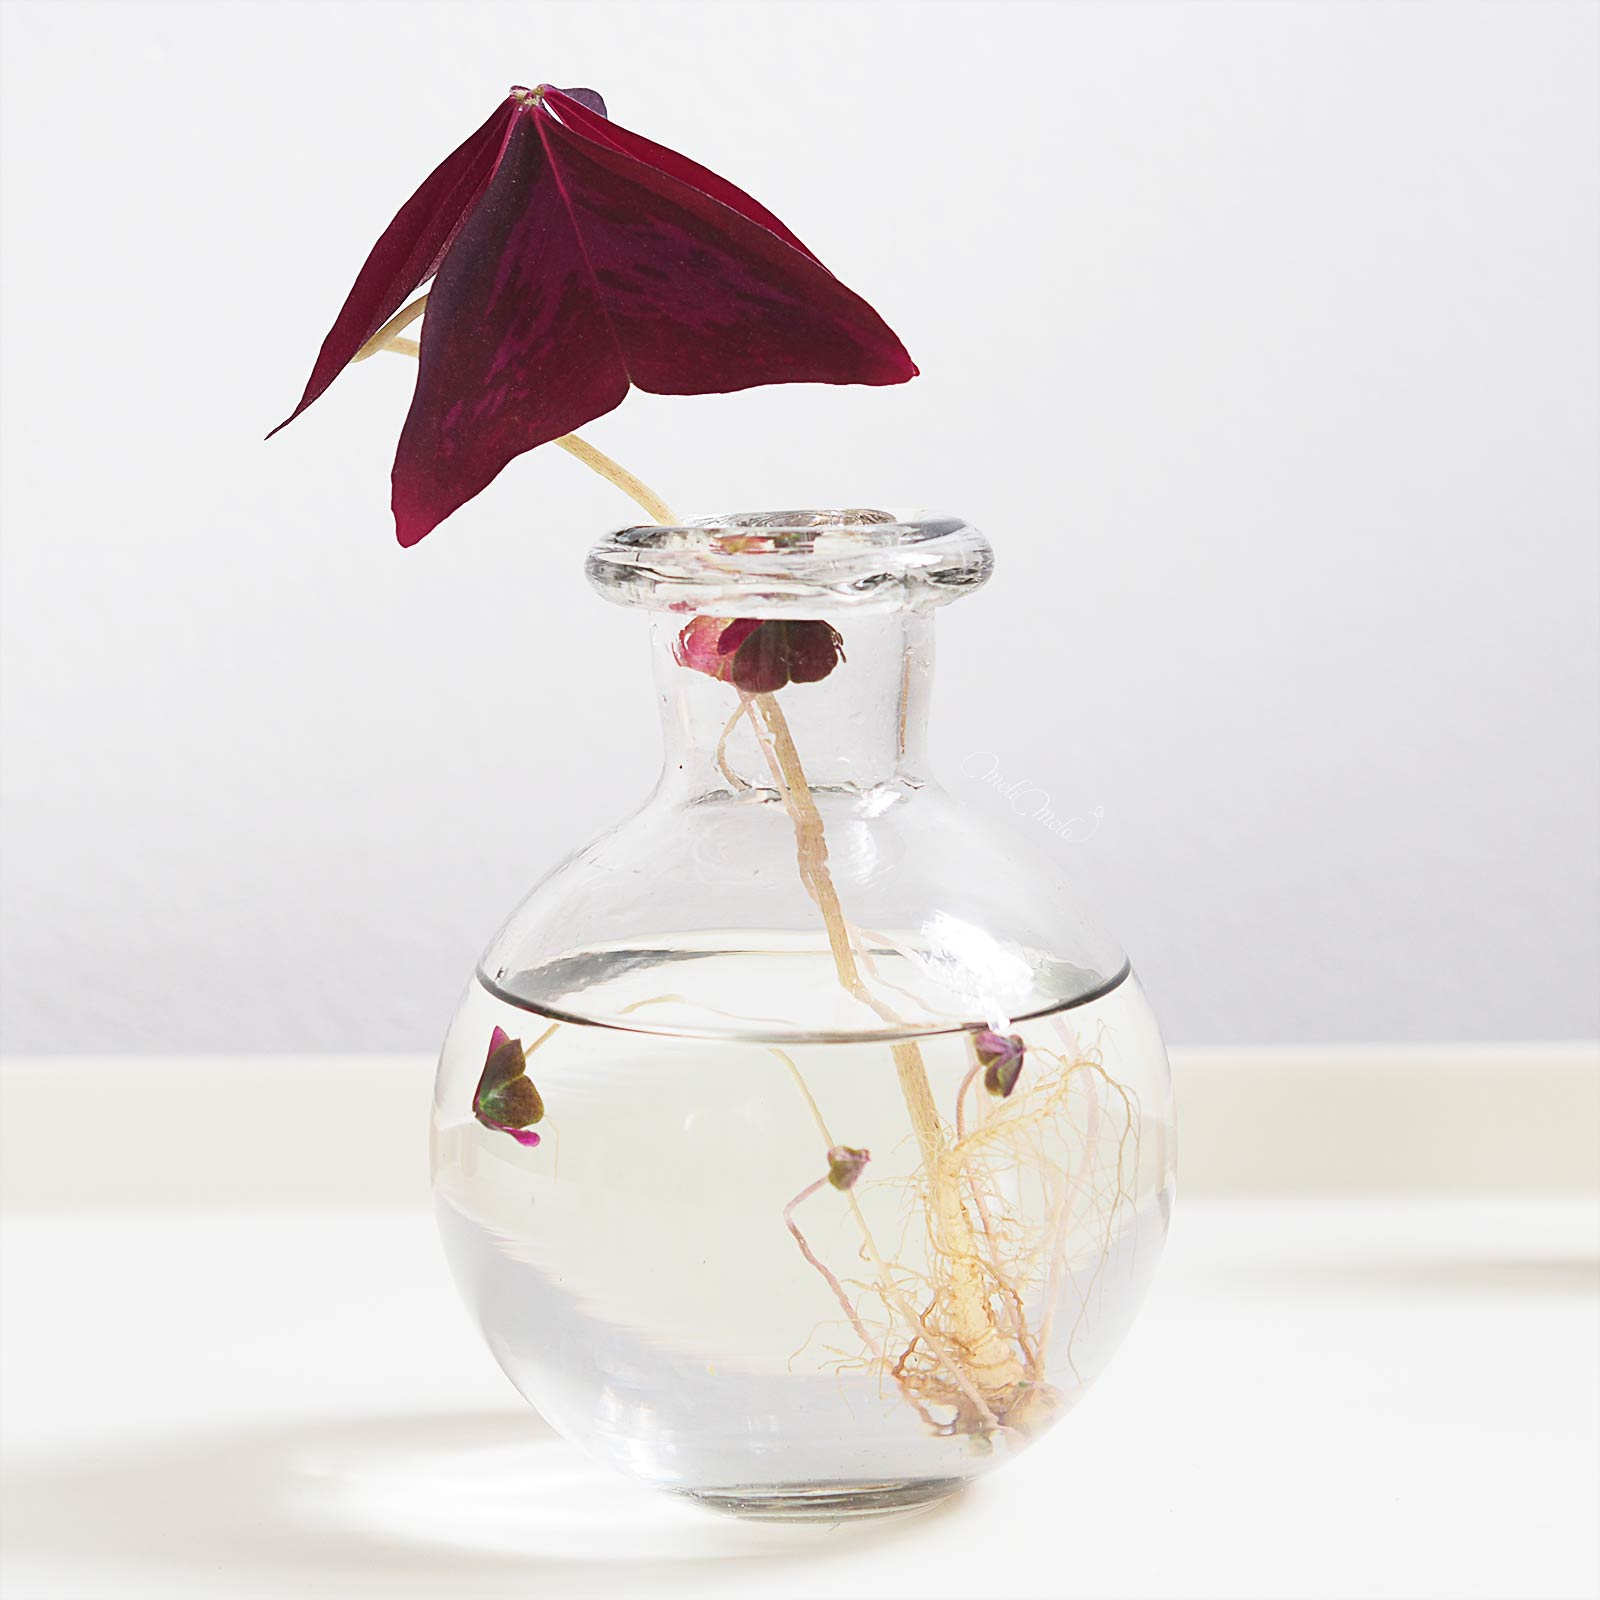 oxalis-triangularis-bouture-hydro-tubercule-7mois-laboutiquedemelimelo